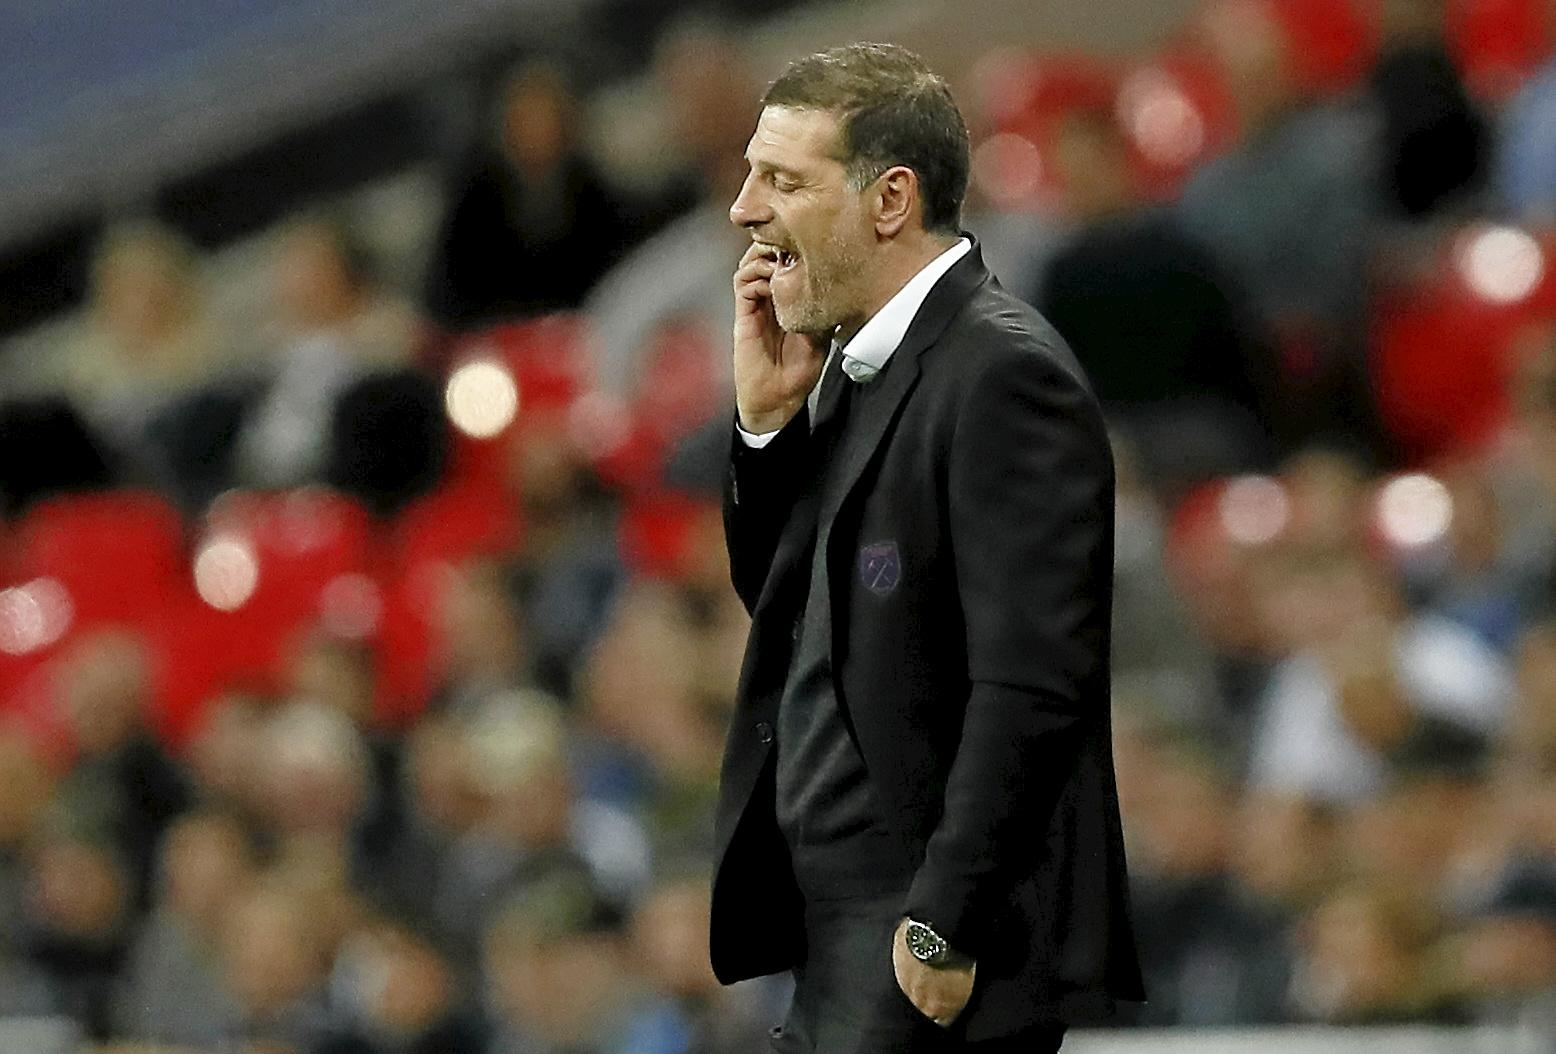 West Ham's manager Slaven Bilic is under pressure to get results.